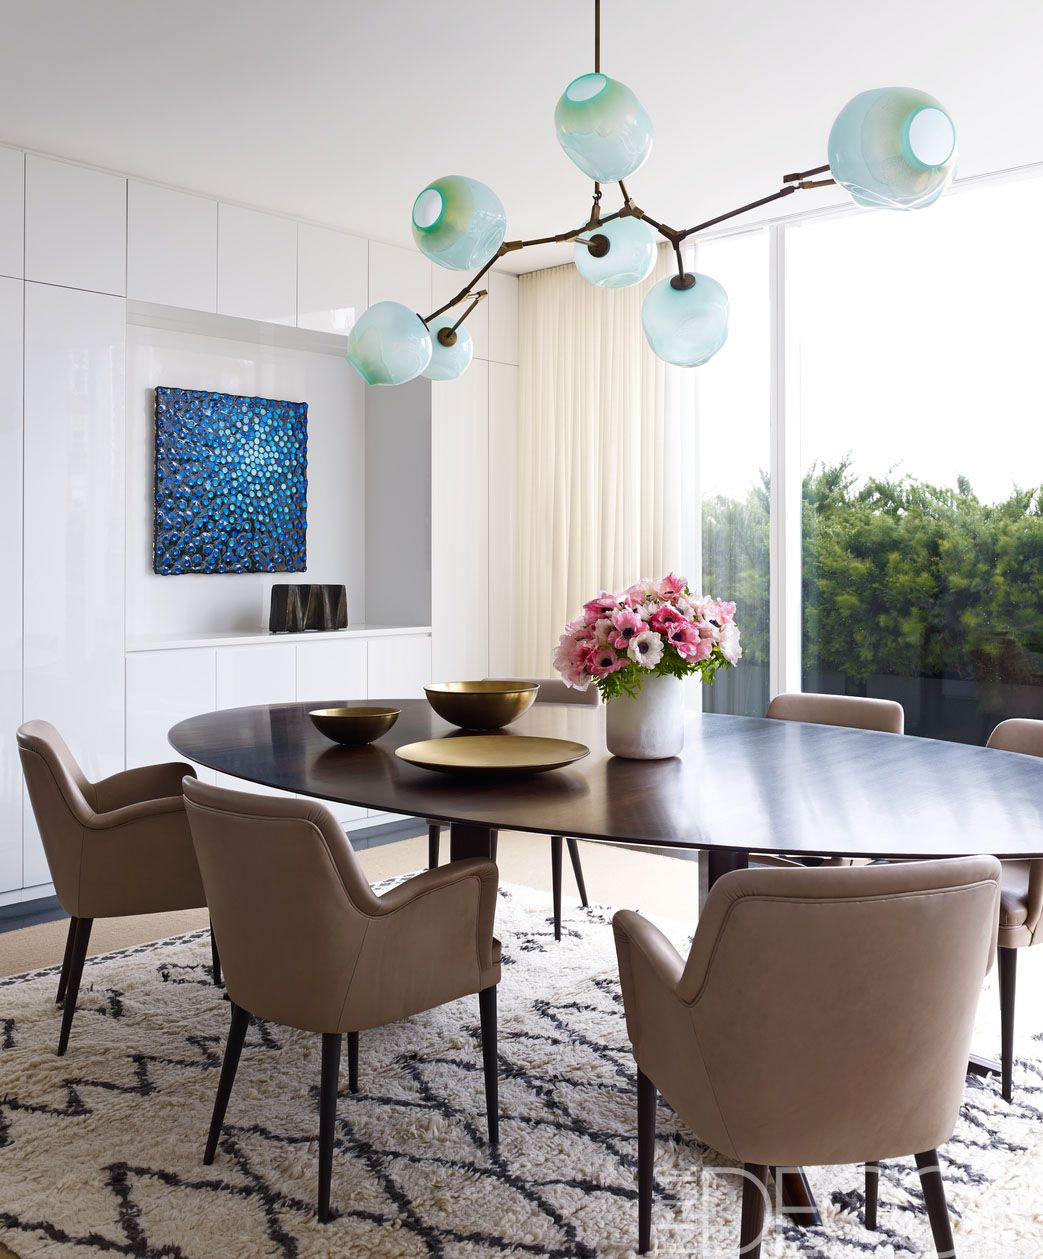 Decorating Dining Room Ideas 25 Modern Dining Room Decorating Ideas  Contemporary Dining Room